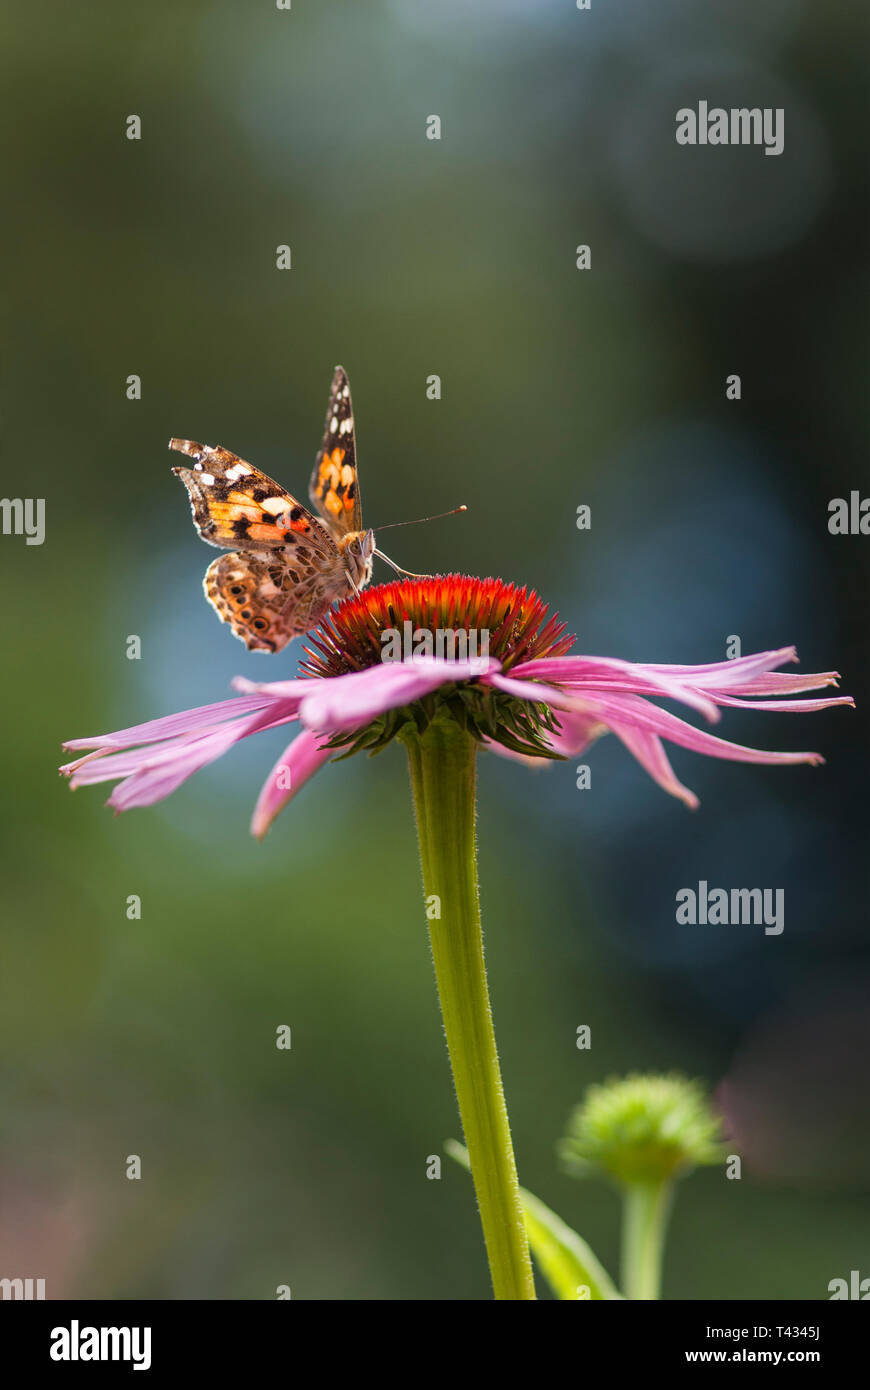 Butterfly drinking nektar from flower, Echinacea purpurea, close up showing butterfly's proboscis ('tongue' or 'straw') - Stock Image